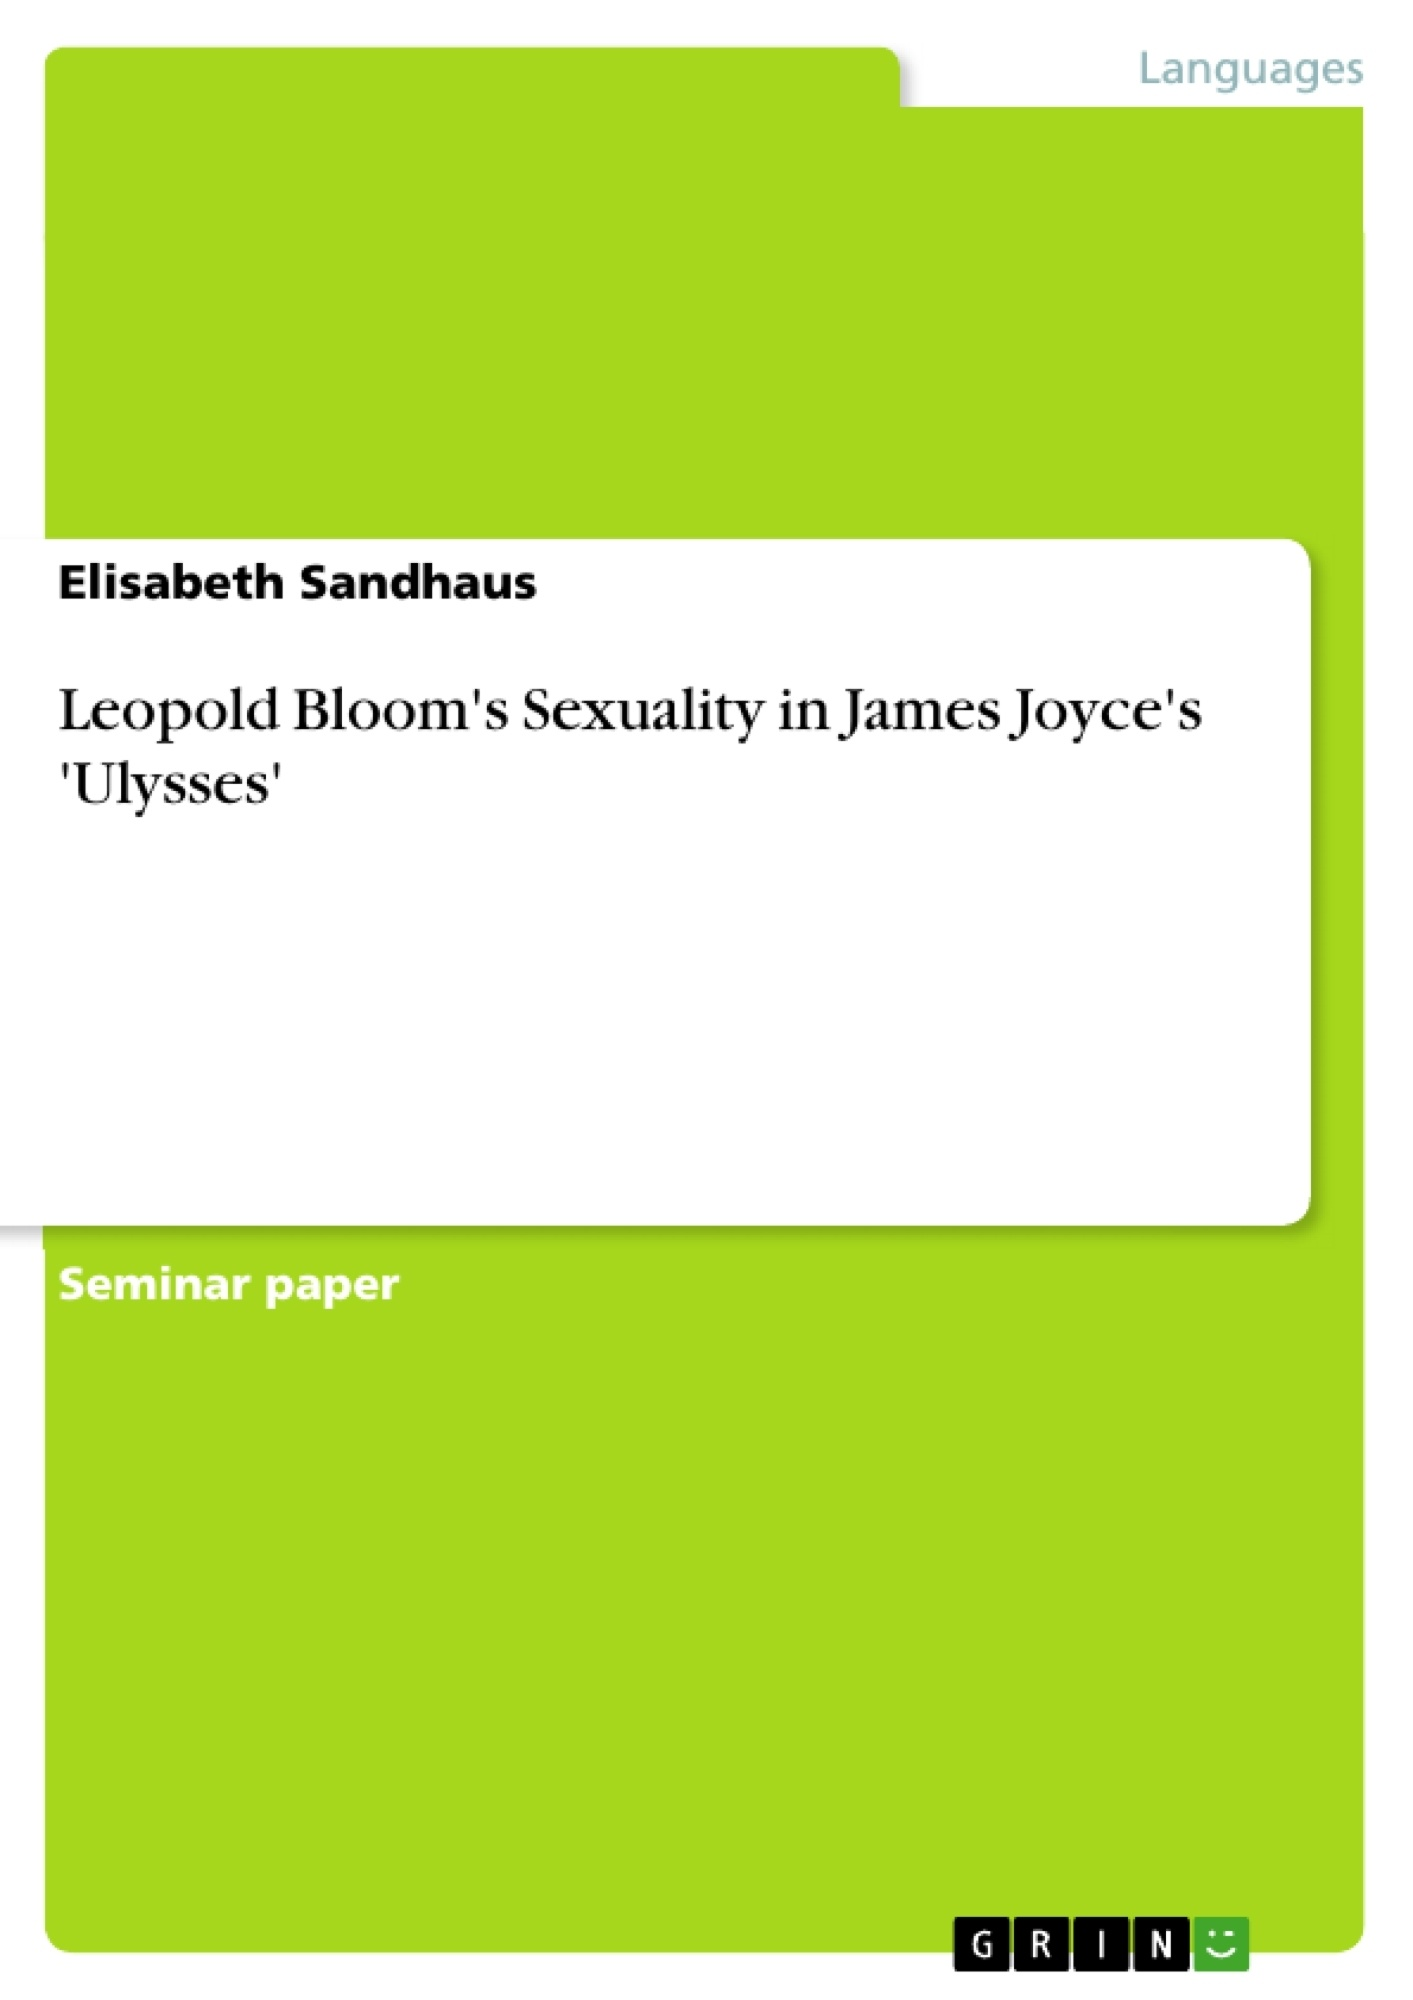 Title: Leopold Bloom's Sexuality in James Joyce's 'Ulysses'